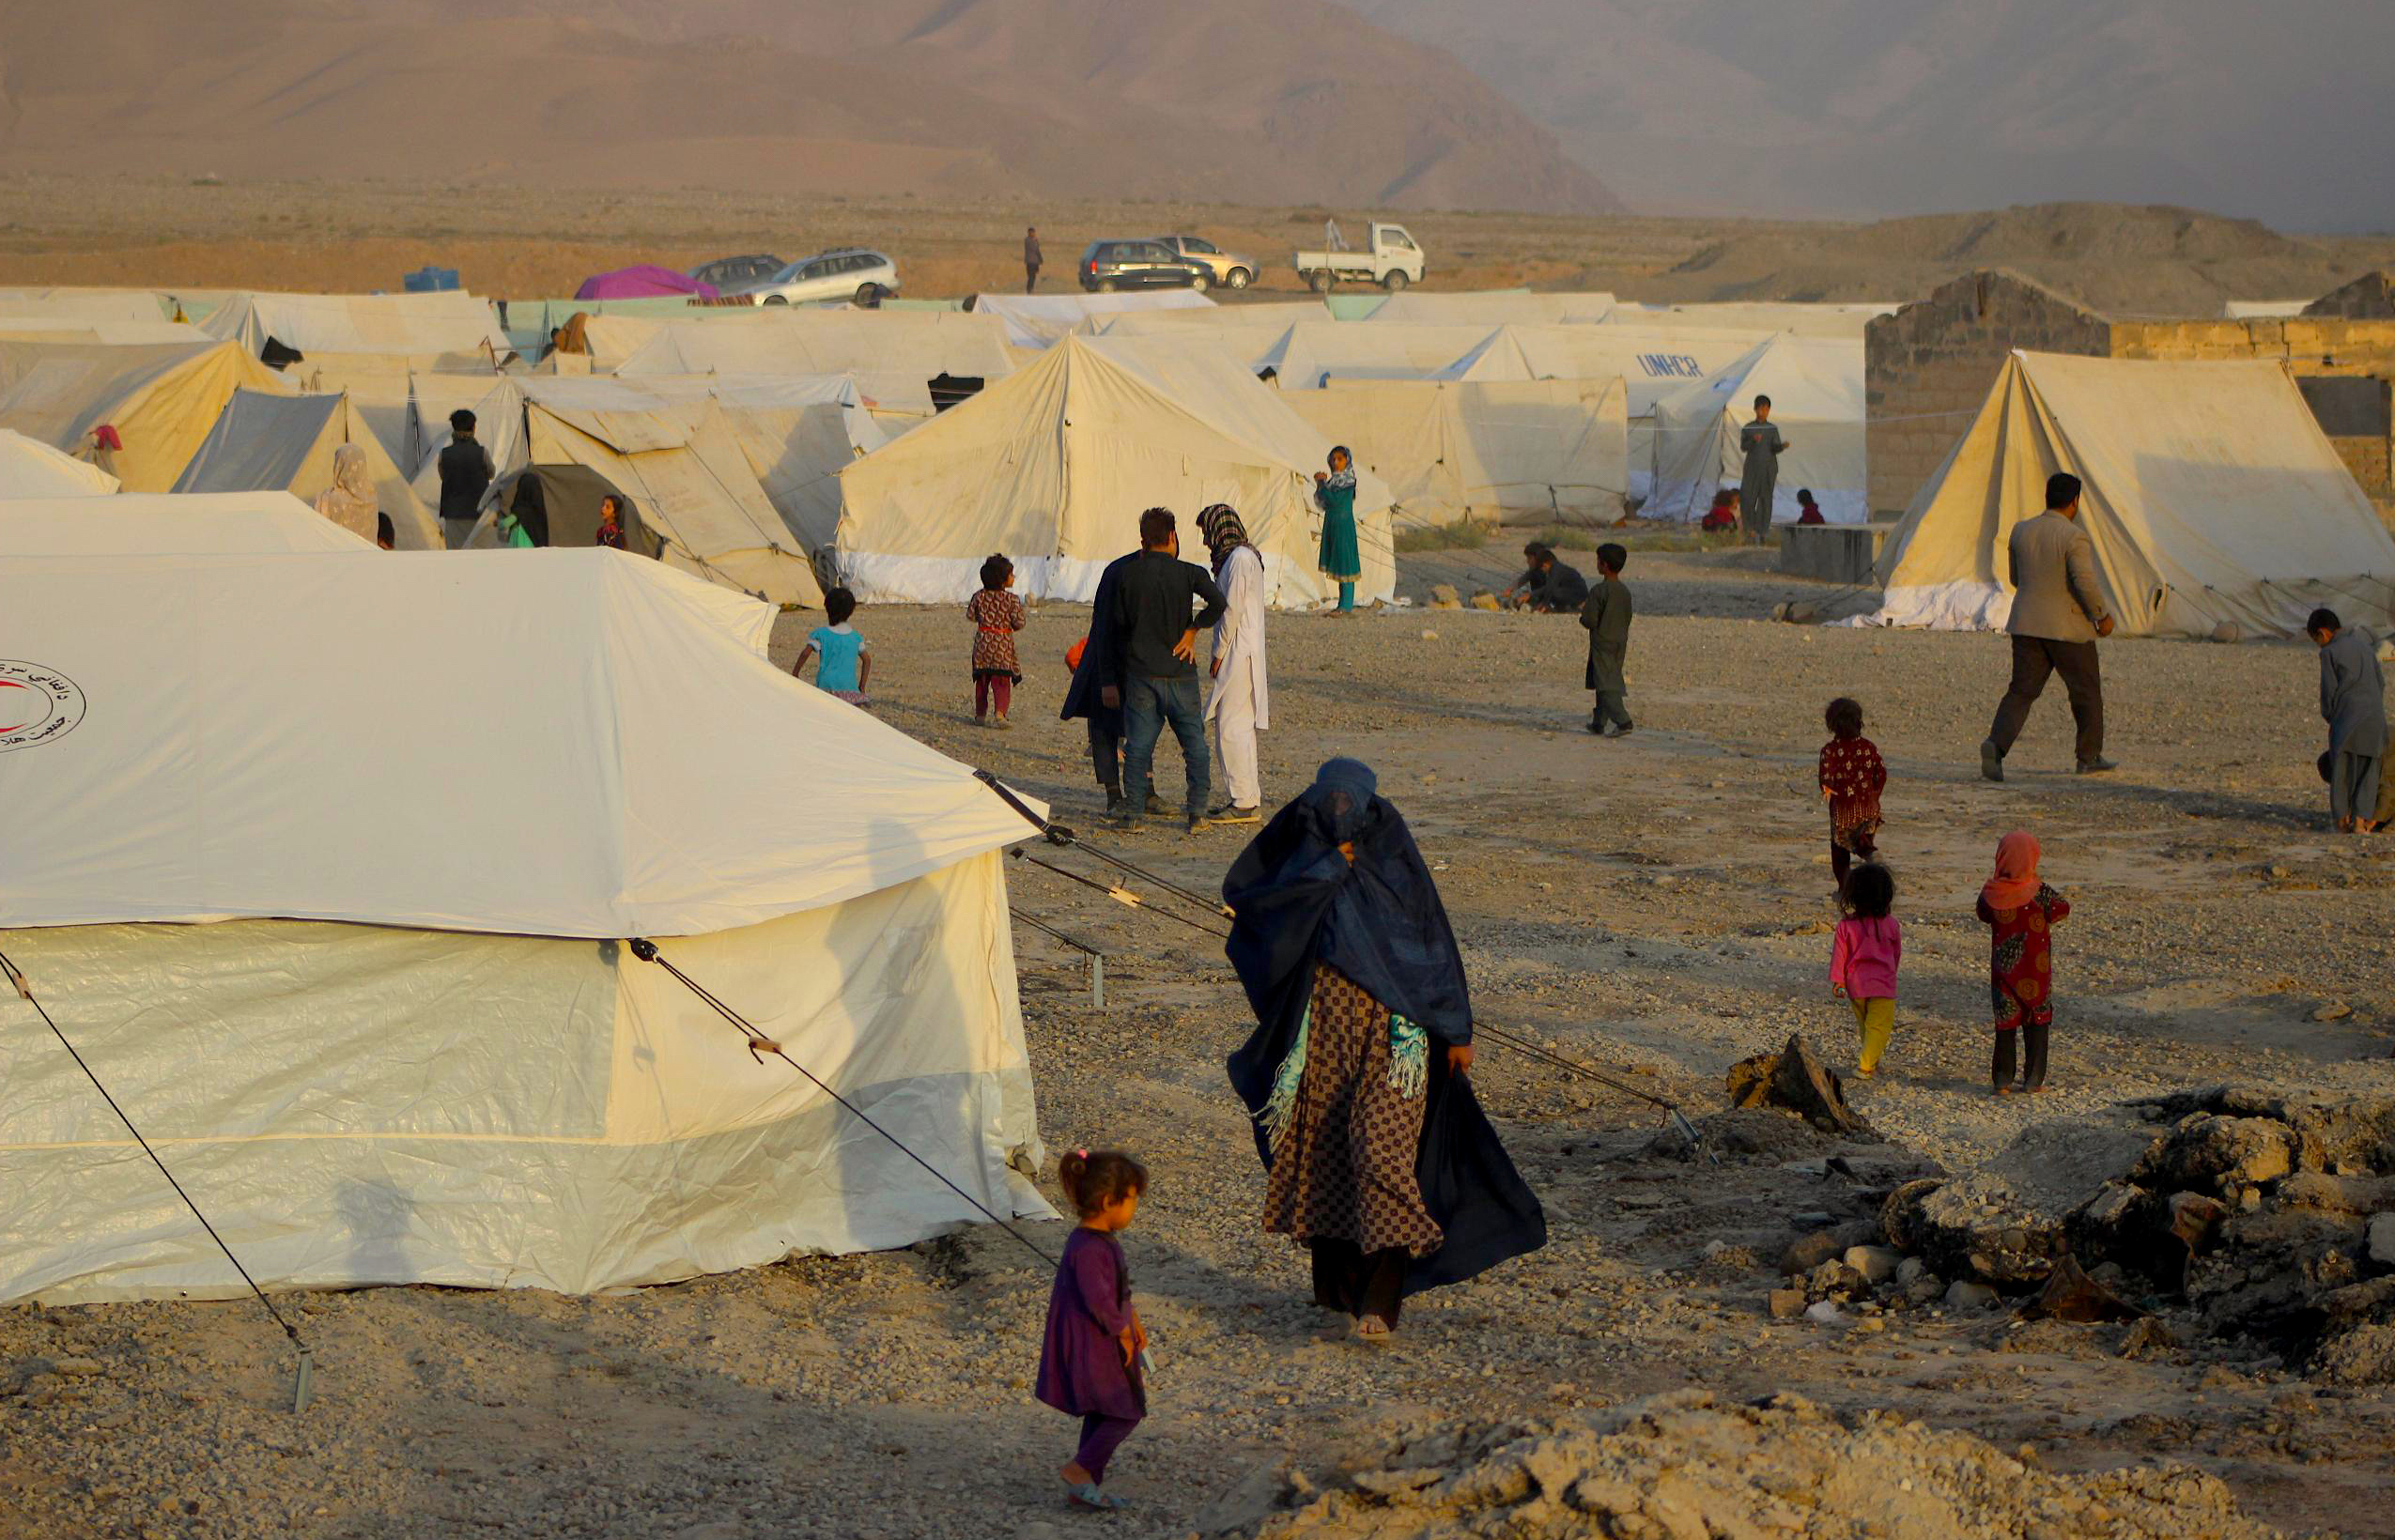 Afghans condemn militant activities as mass displacement continues